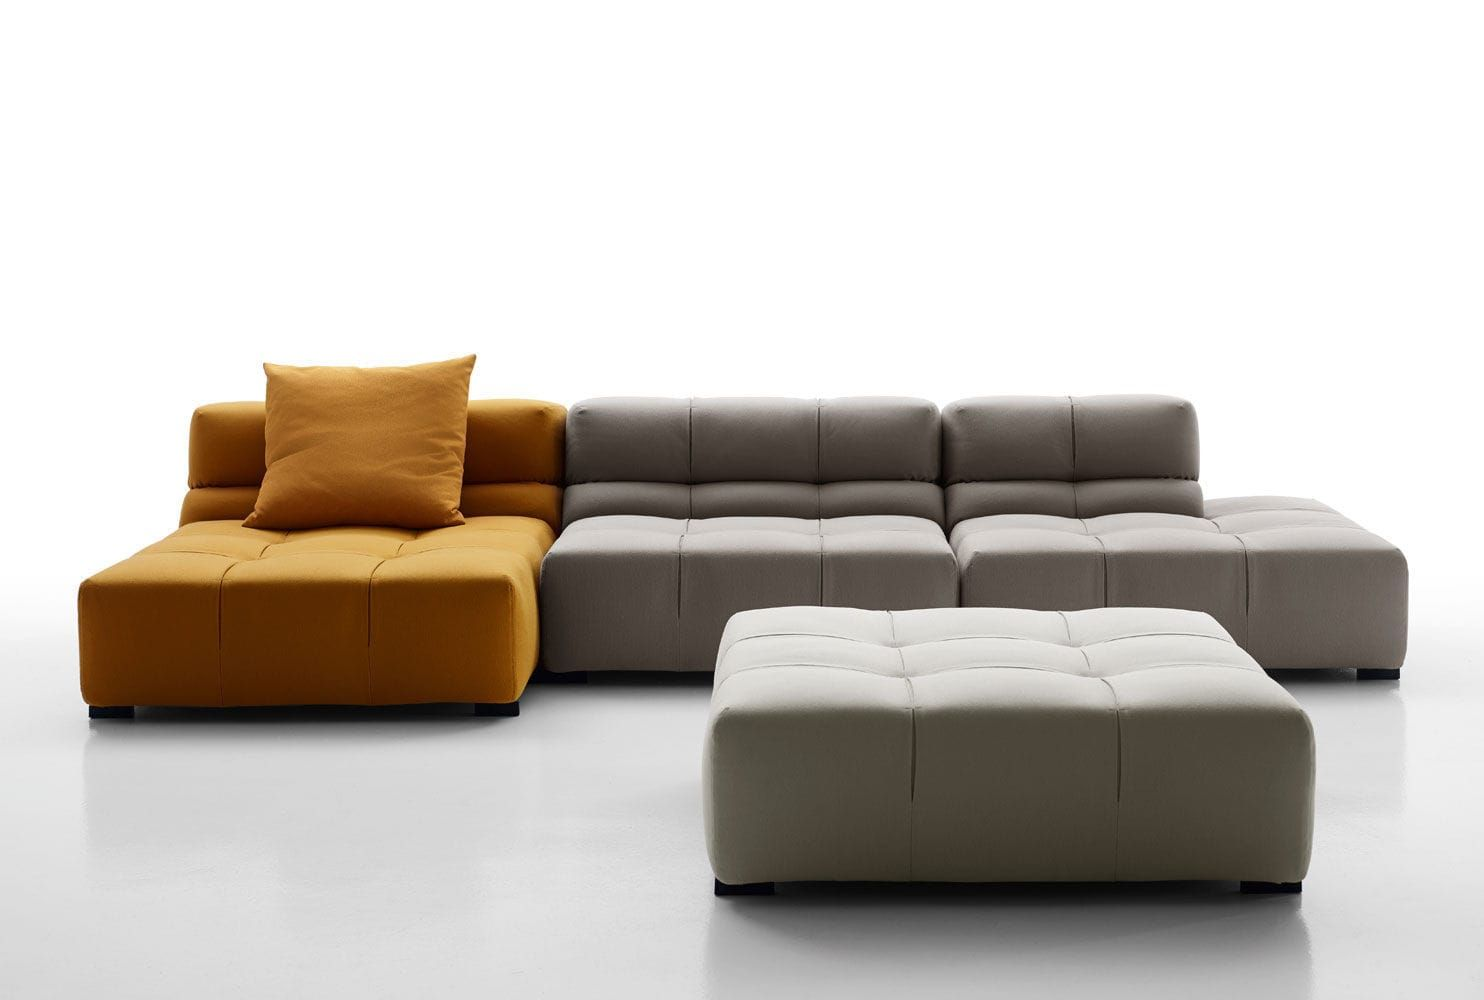 Sofa Module Pin By Garriosn On S沙发 In 2019 B B Italia Sofa Furniture